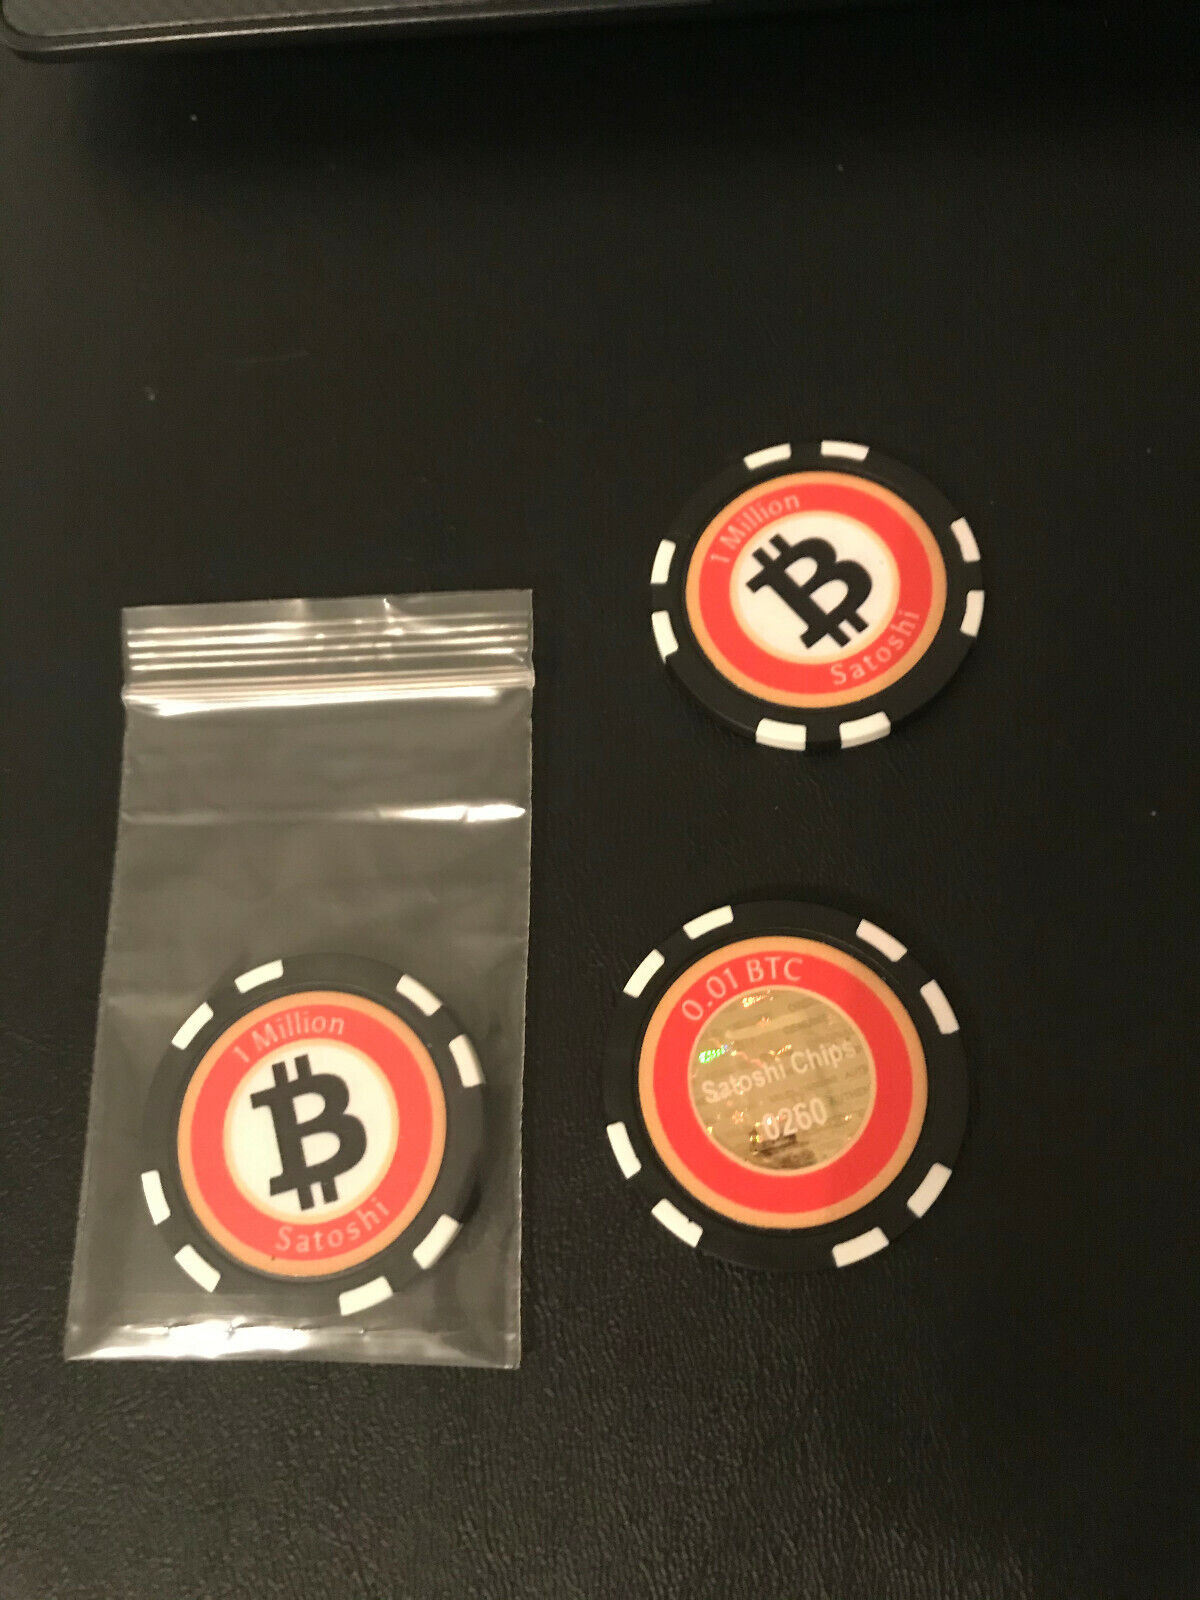 Bitcoin Poker Chip Wallet-Limited Edition 0.01 BTC Denominated 1